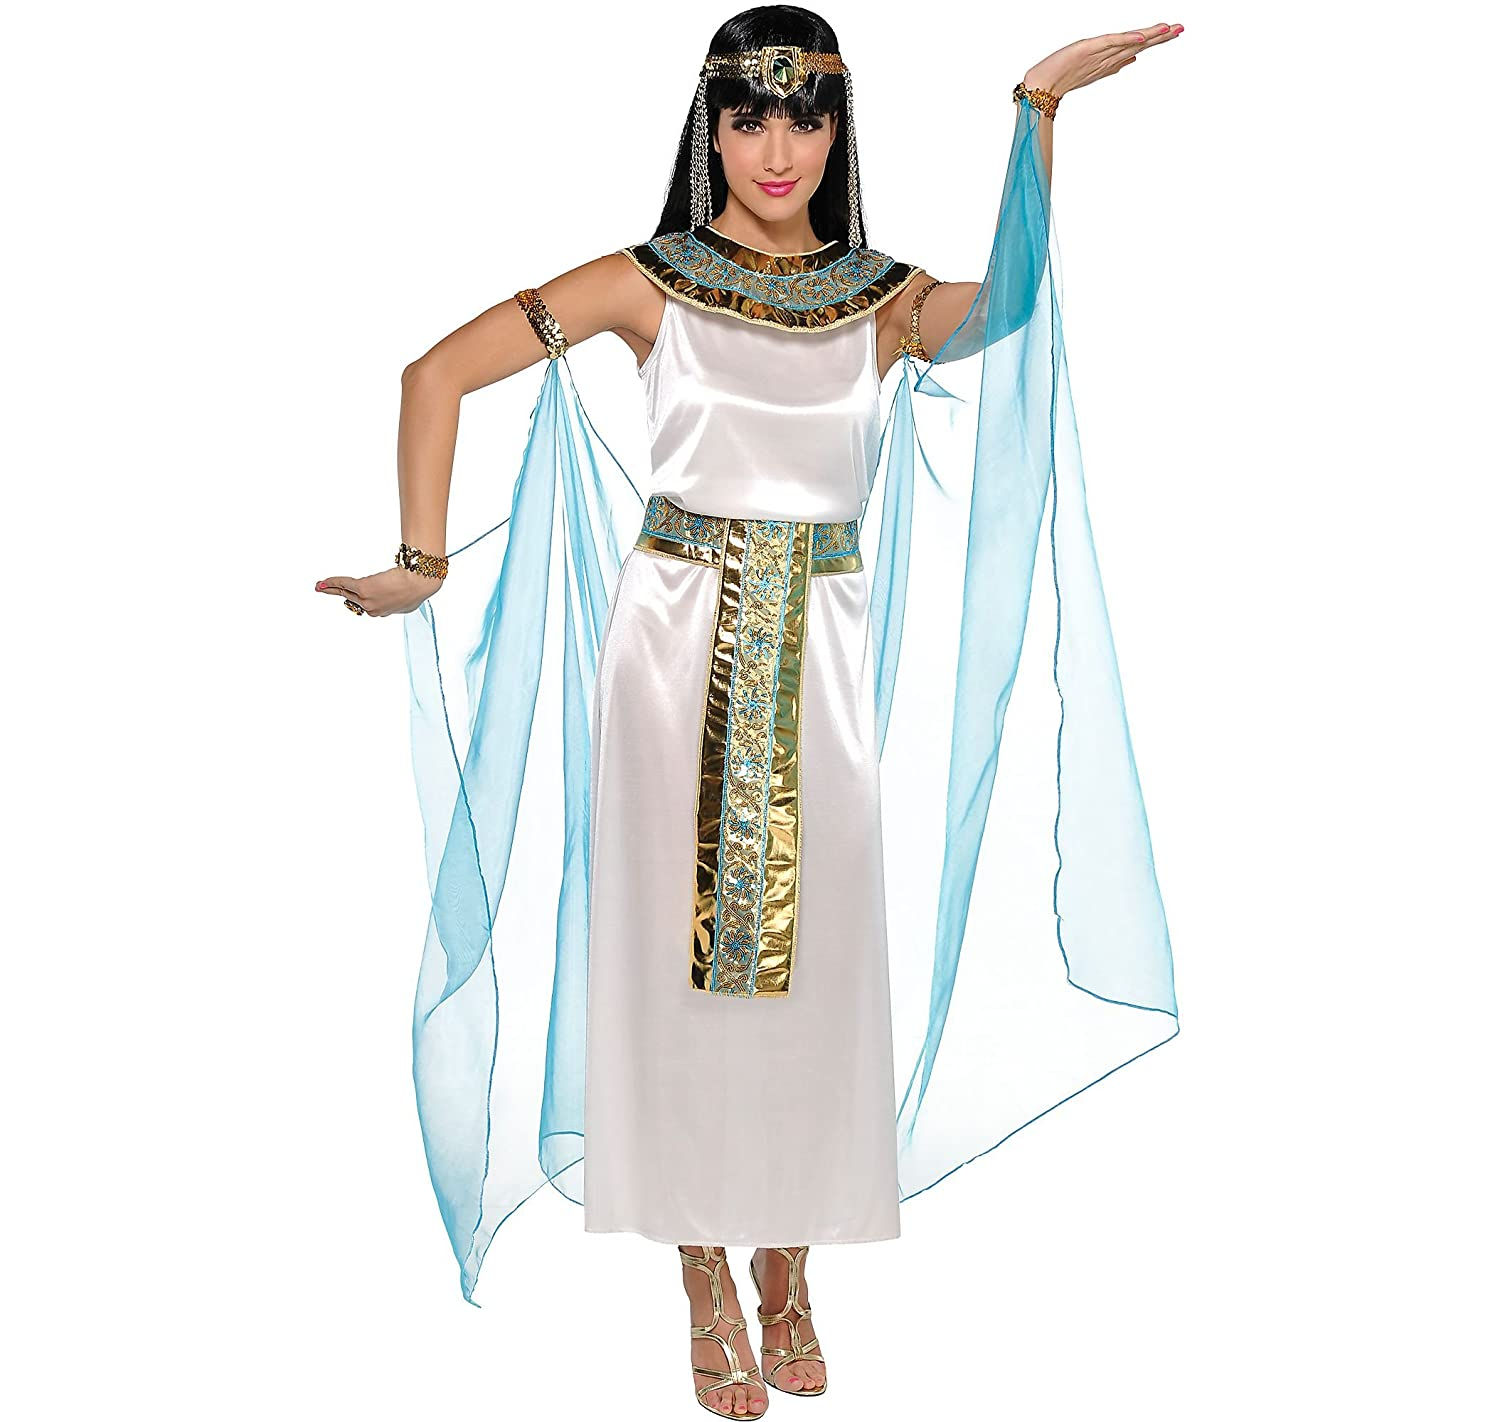 a90b4e0dbbc56 Charm the ancient Egyptian world in our Queen Cleopatra costume featuring a  full length white satin dress and an attached sheer cape